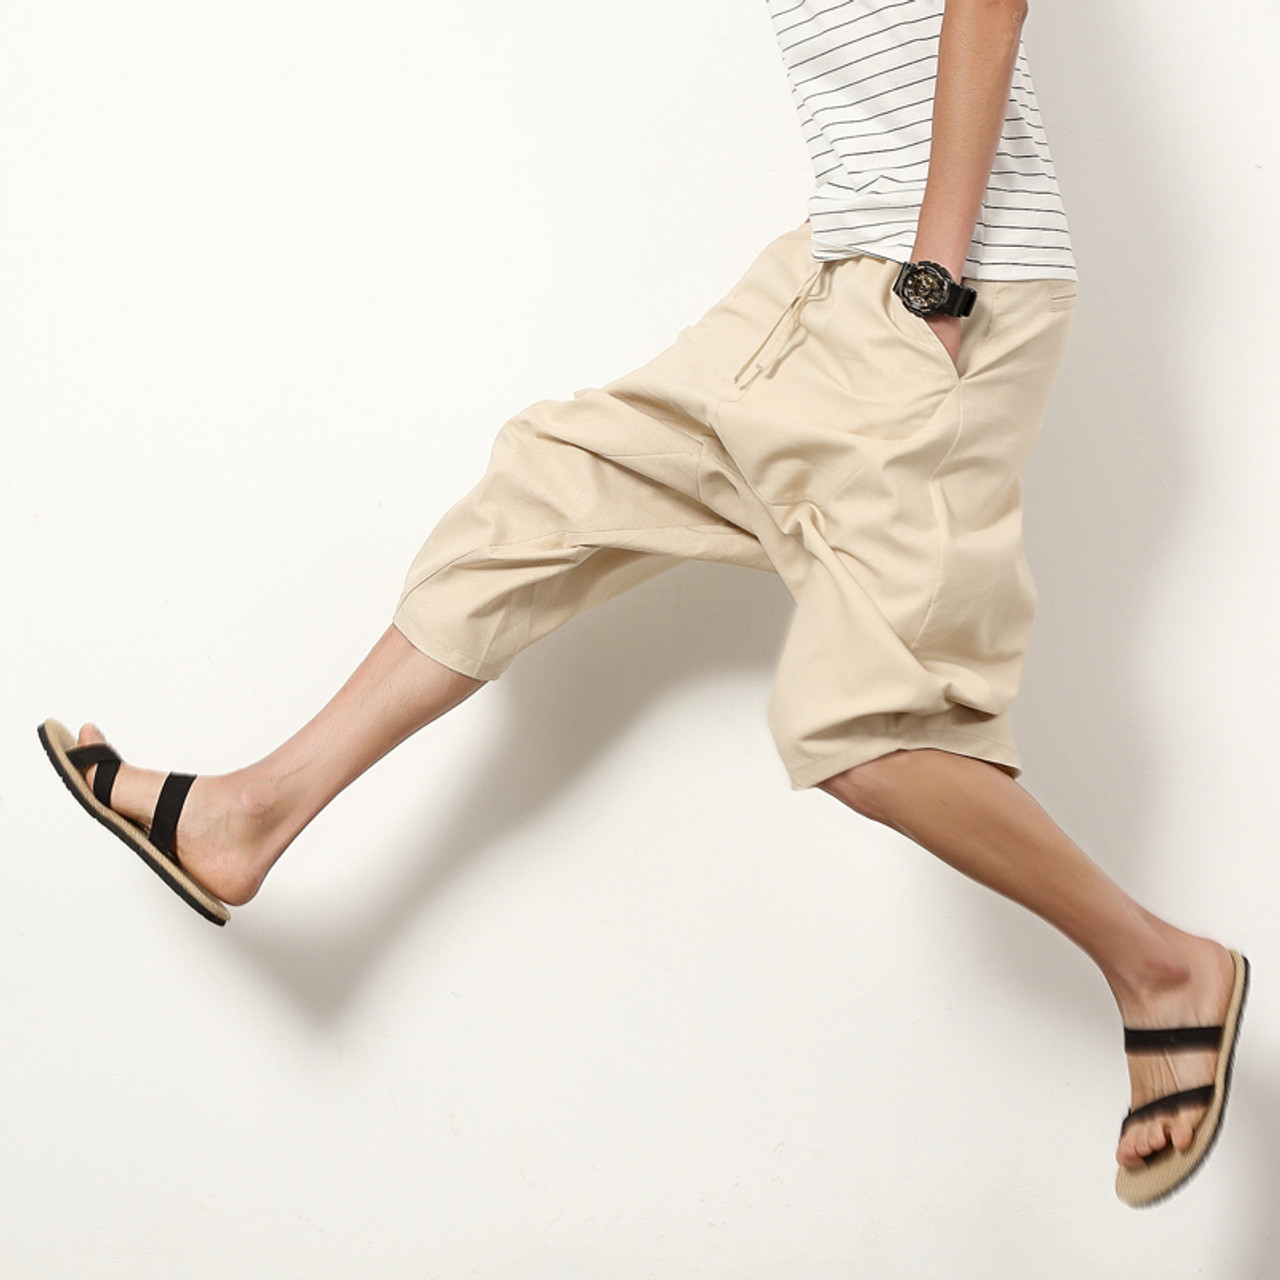 1a5c10340 Summer Harlan Linen Cotton Casual Pants Men Drawstring Waist Male Solid  Color Patch Pants Loose Trousers ...